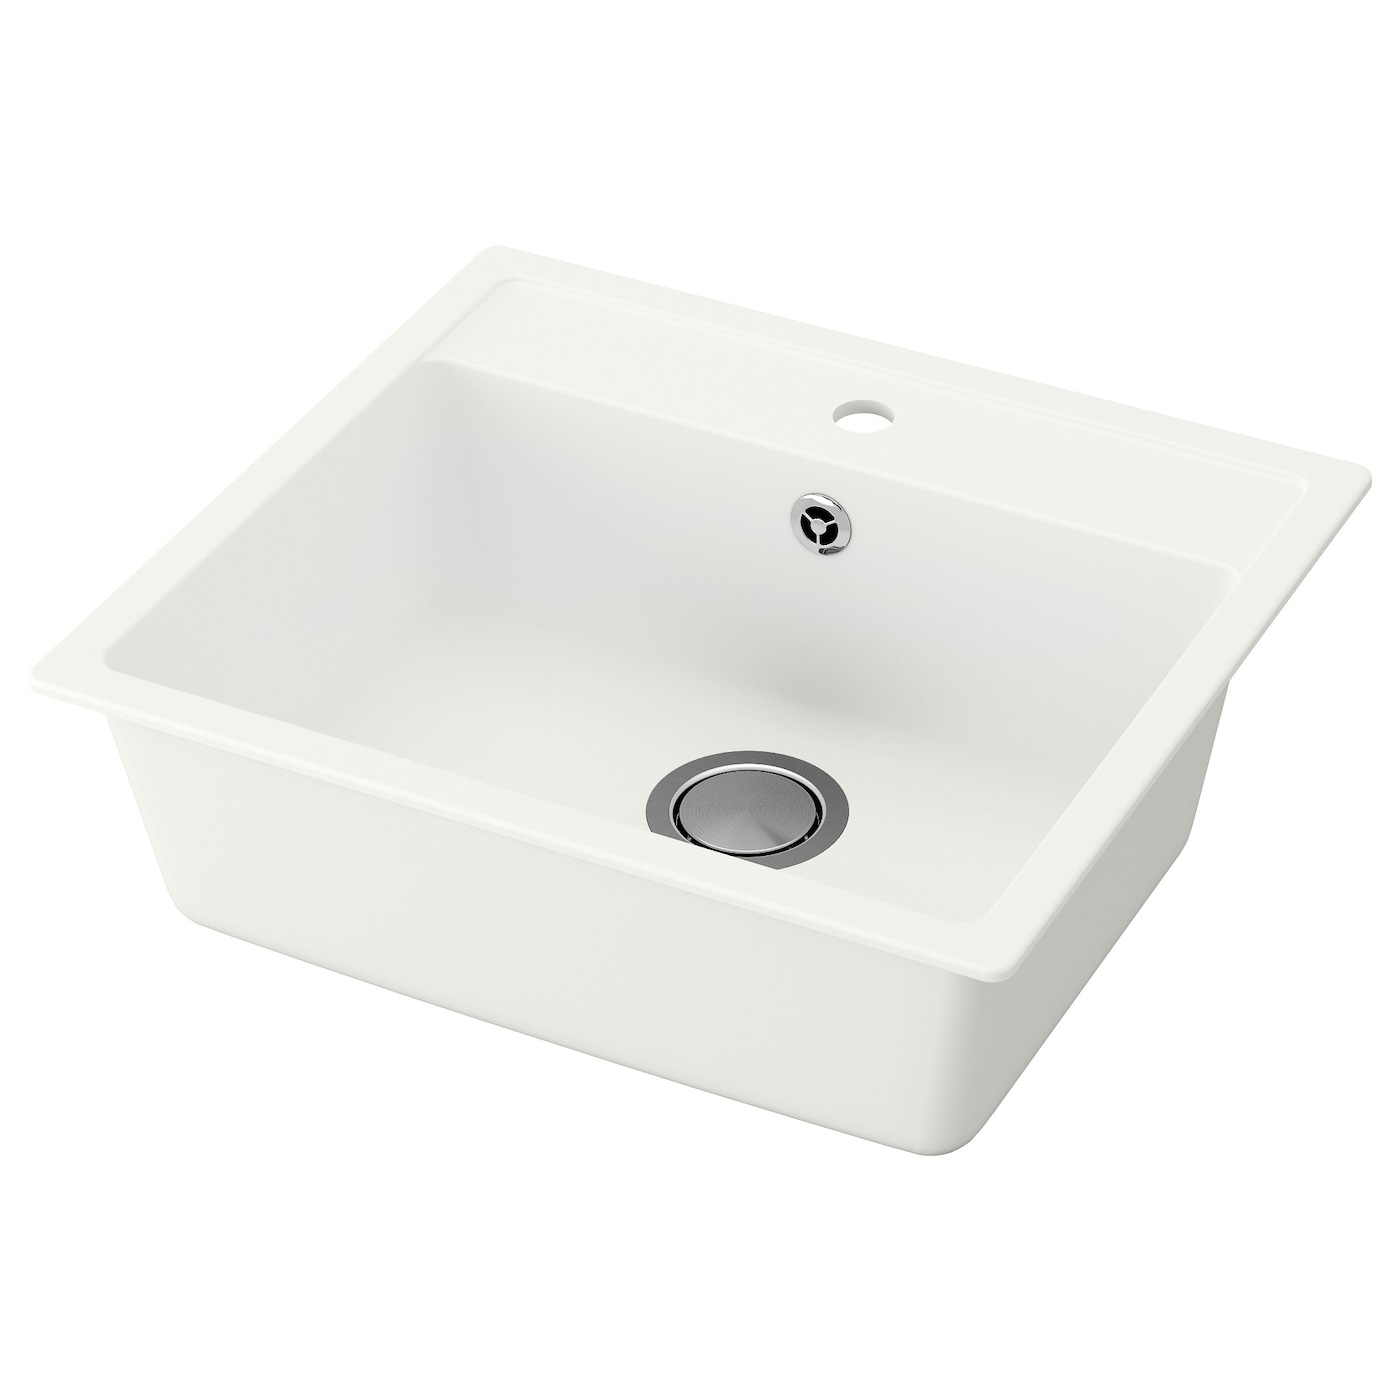 IKEA HÄLLVIKEN Inset Sink, 1 Bowl 25 Year Guarantee. Read About The Terms In